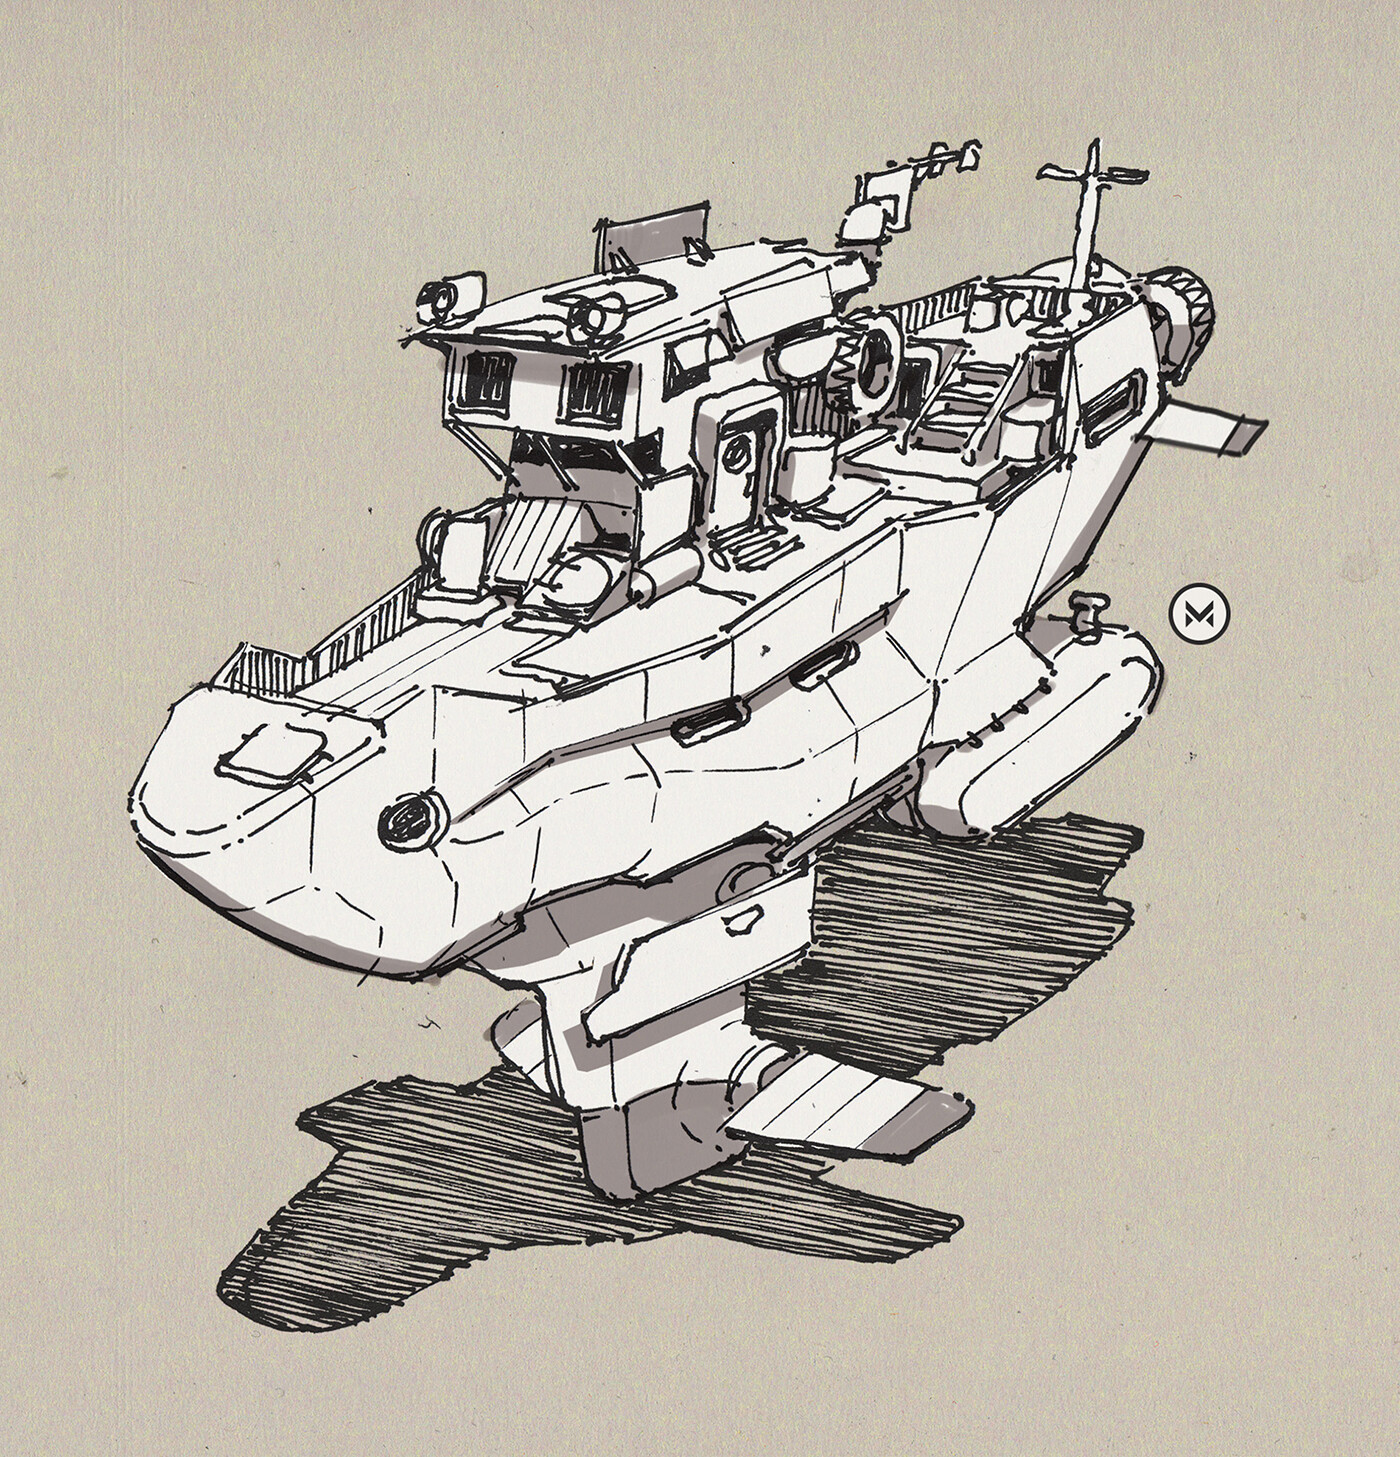 Hovercutter - inspired by the artist Ian McQue